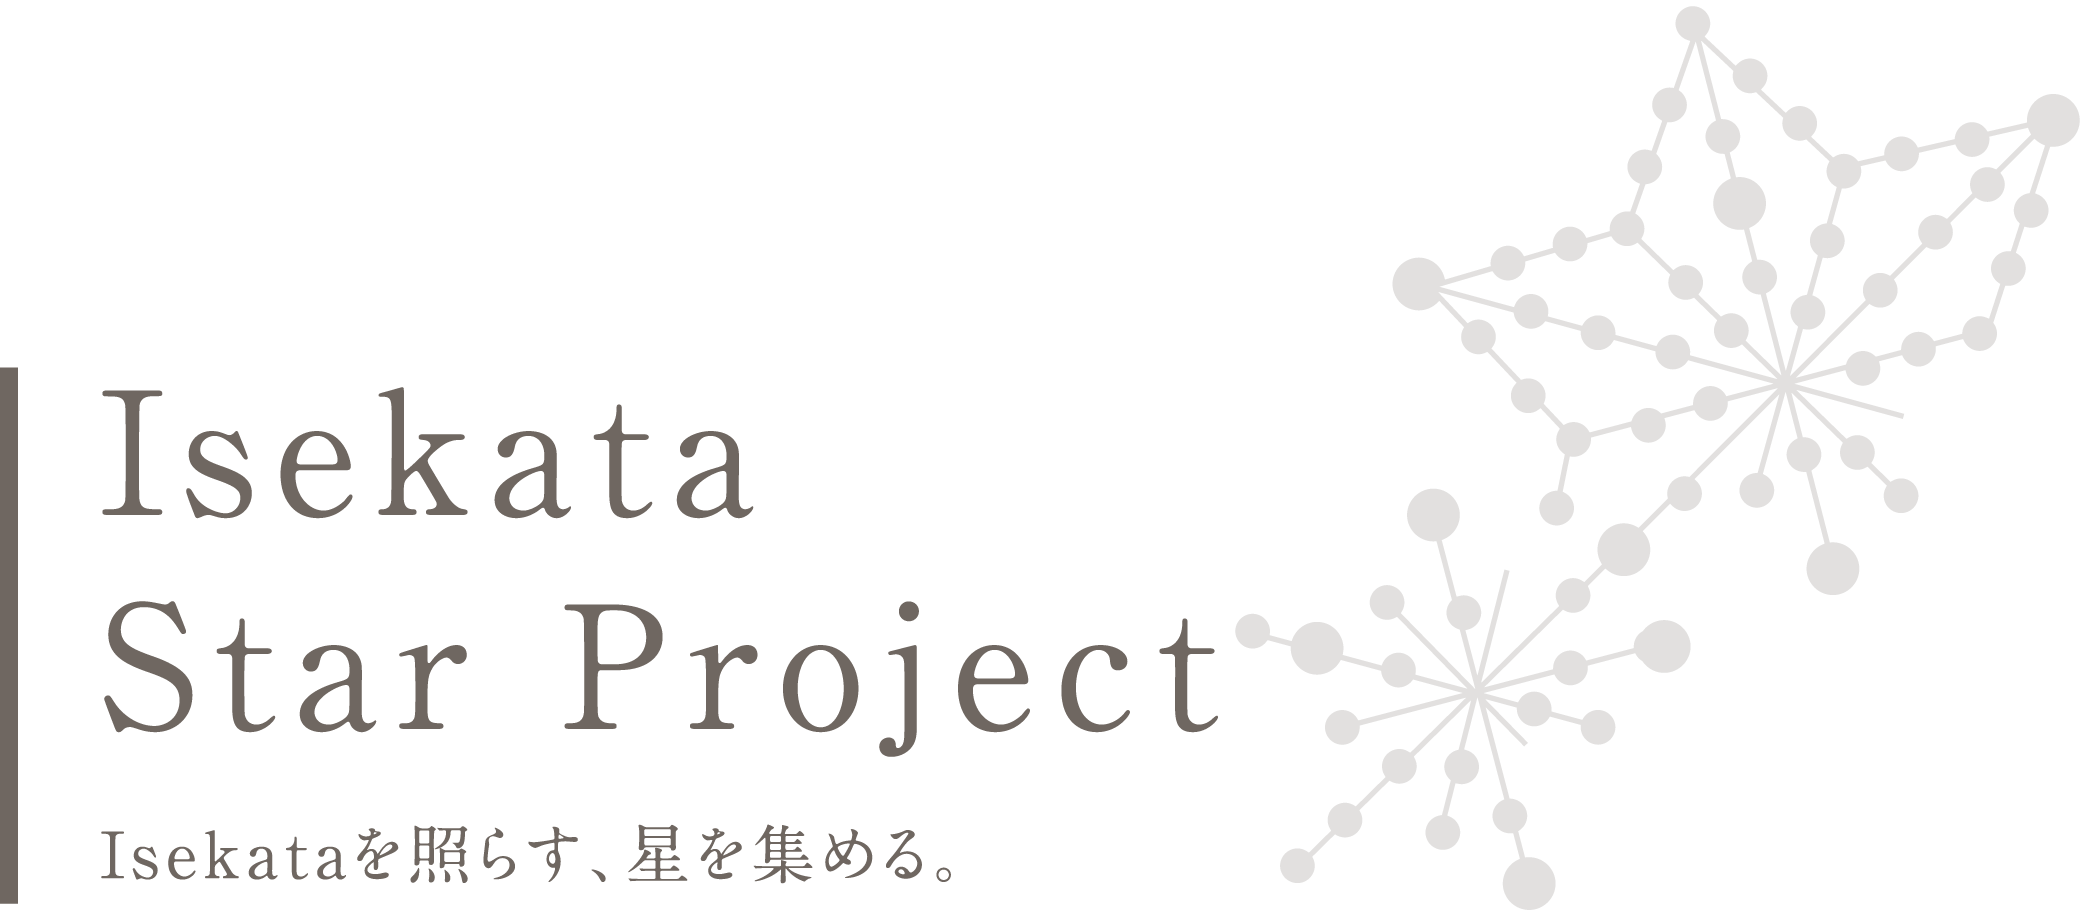 Isekata Star Project